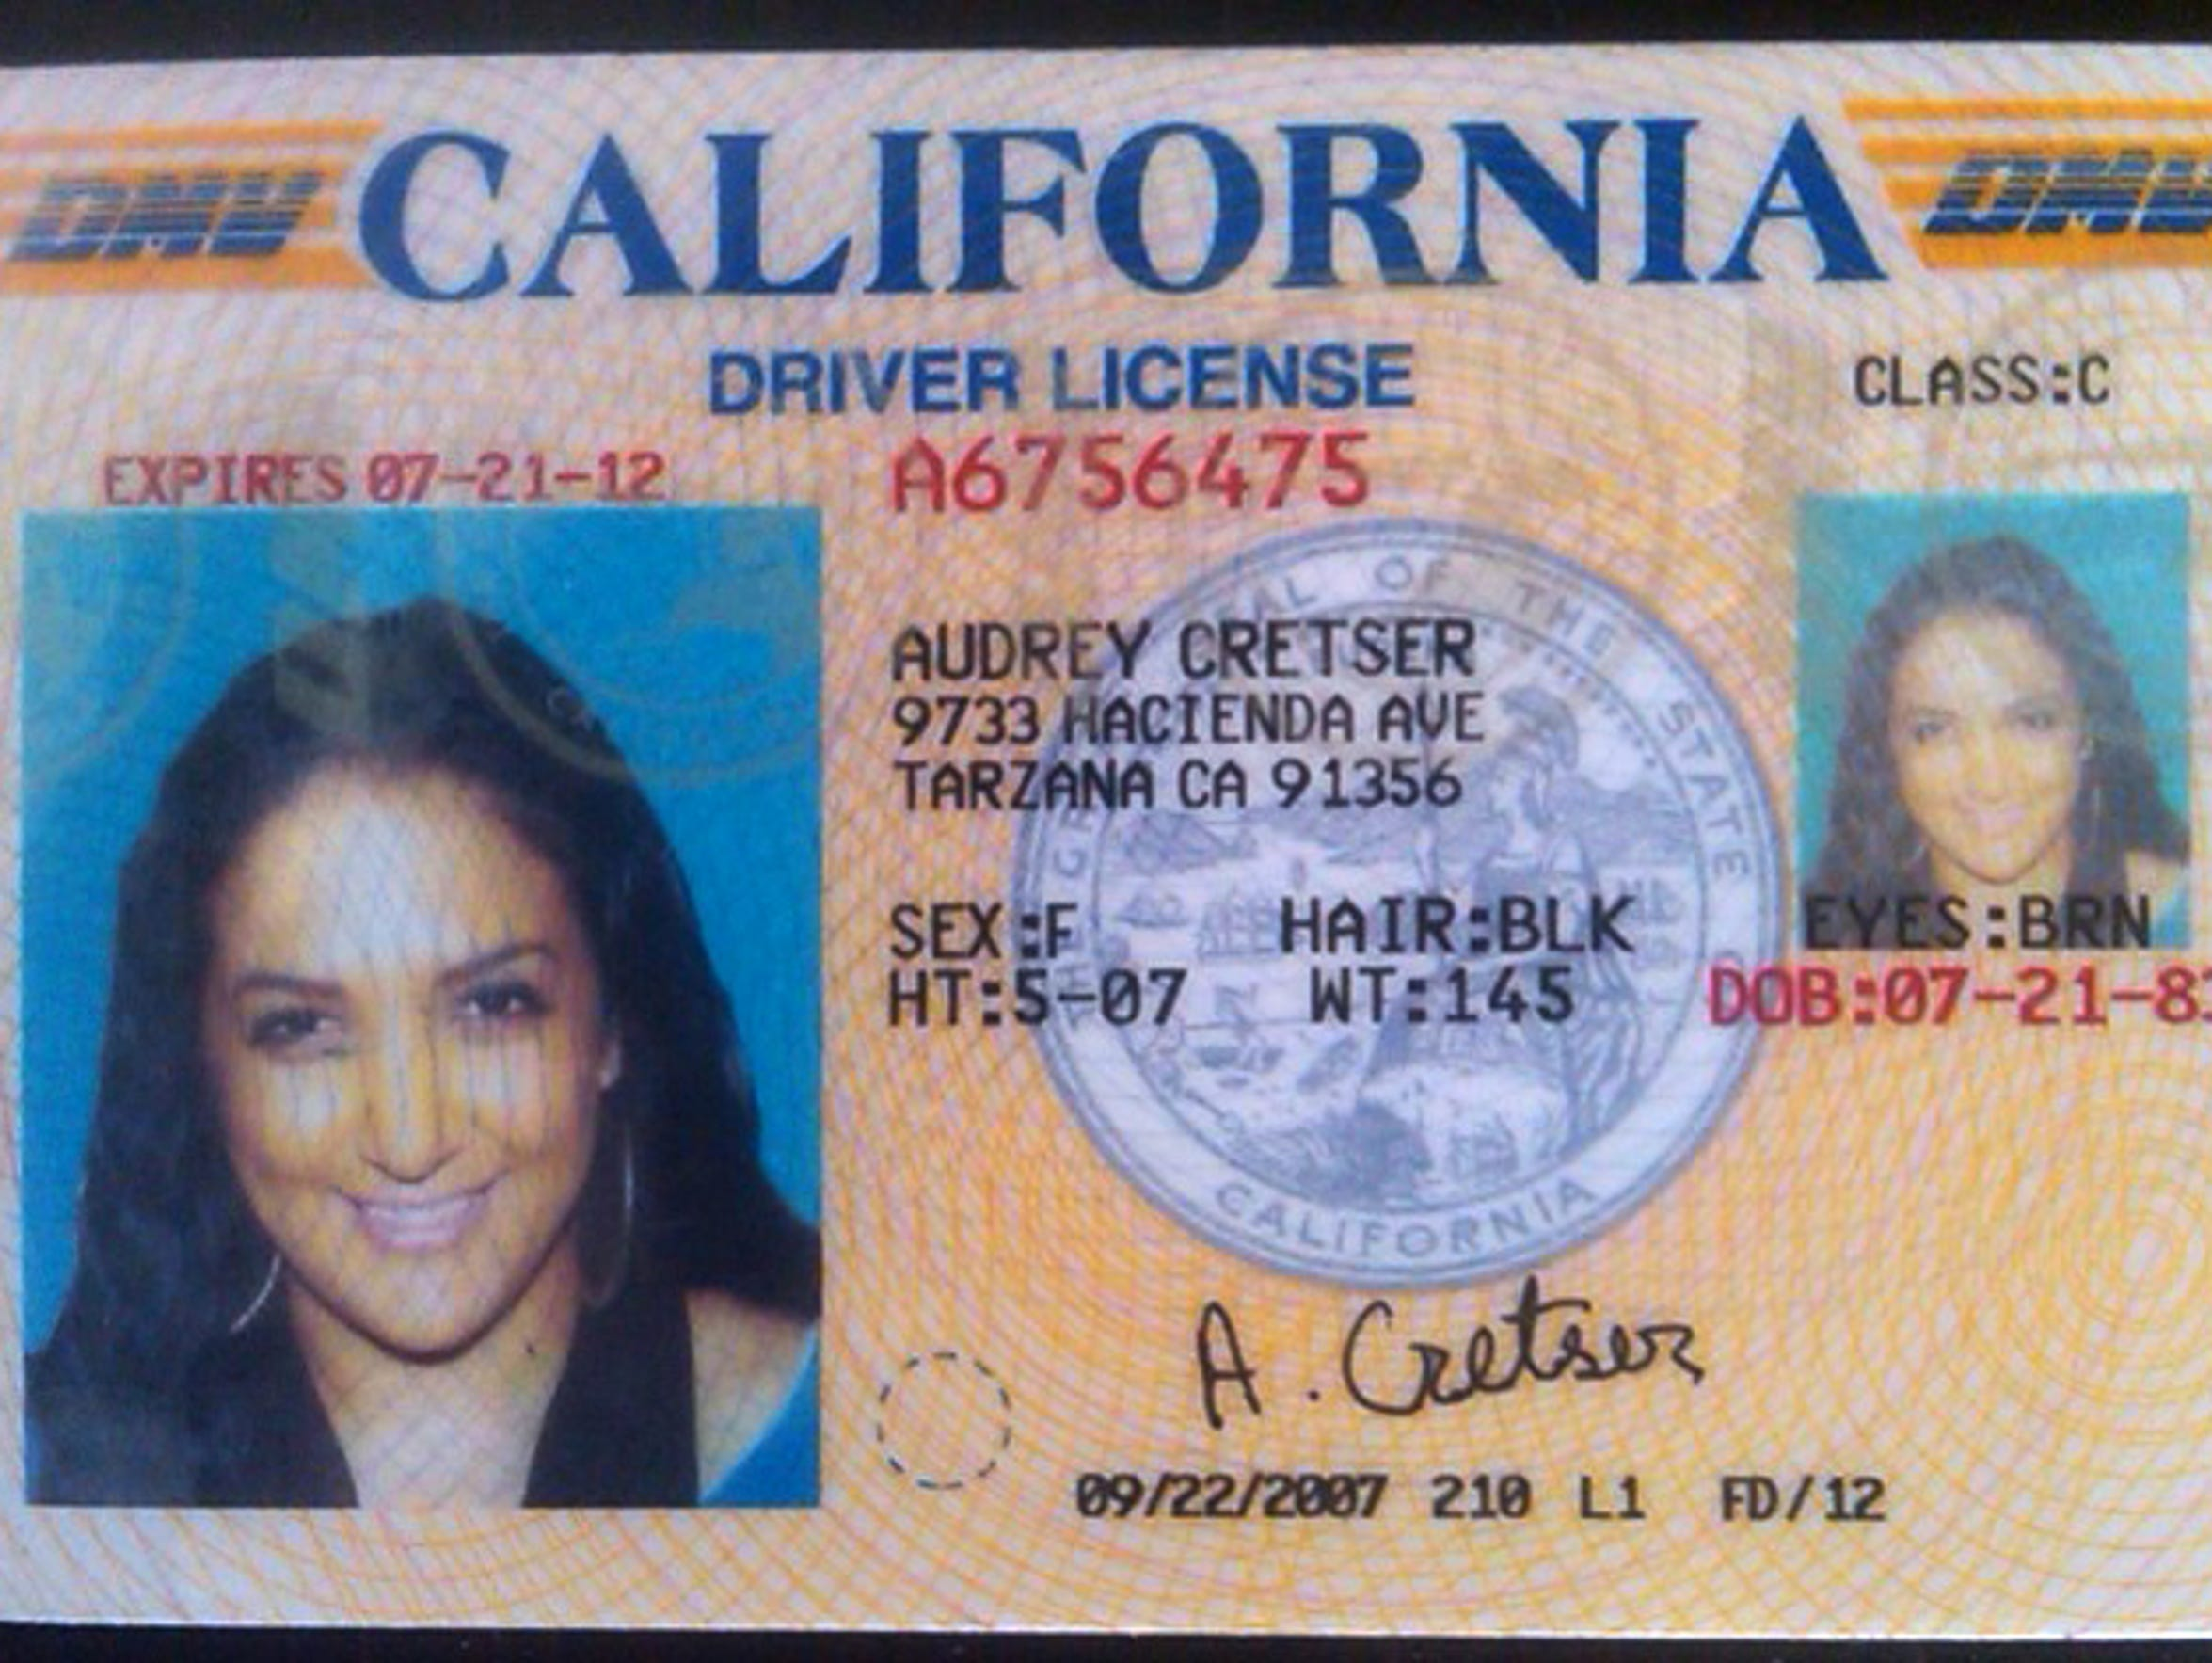 A driver's license for 'Audrey Cretser' was used to